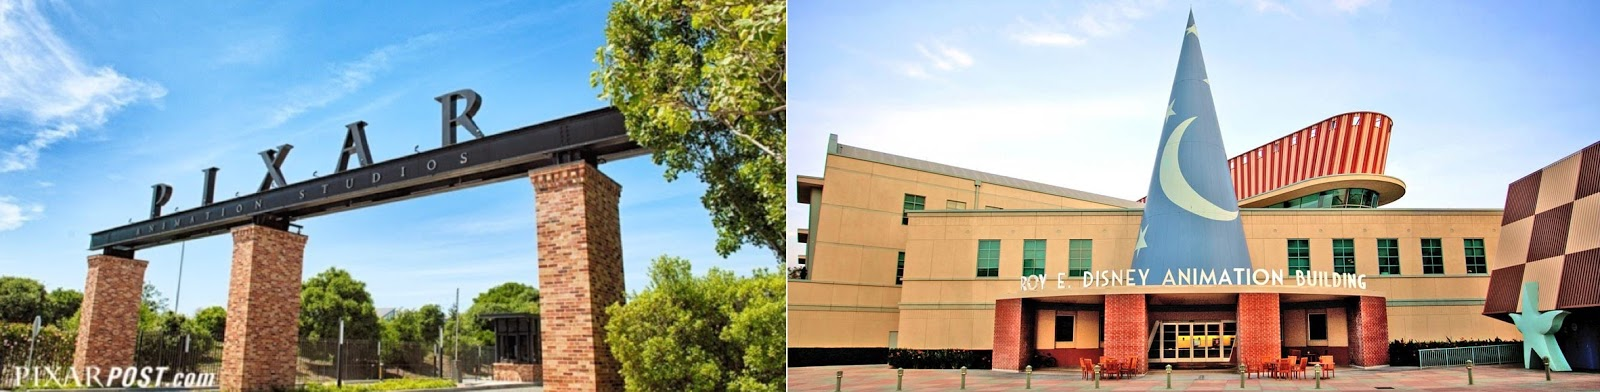 The Blending Of Pixar And Disney Animation Studios A Look At The